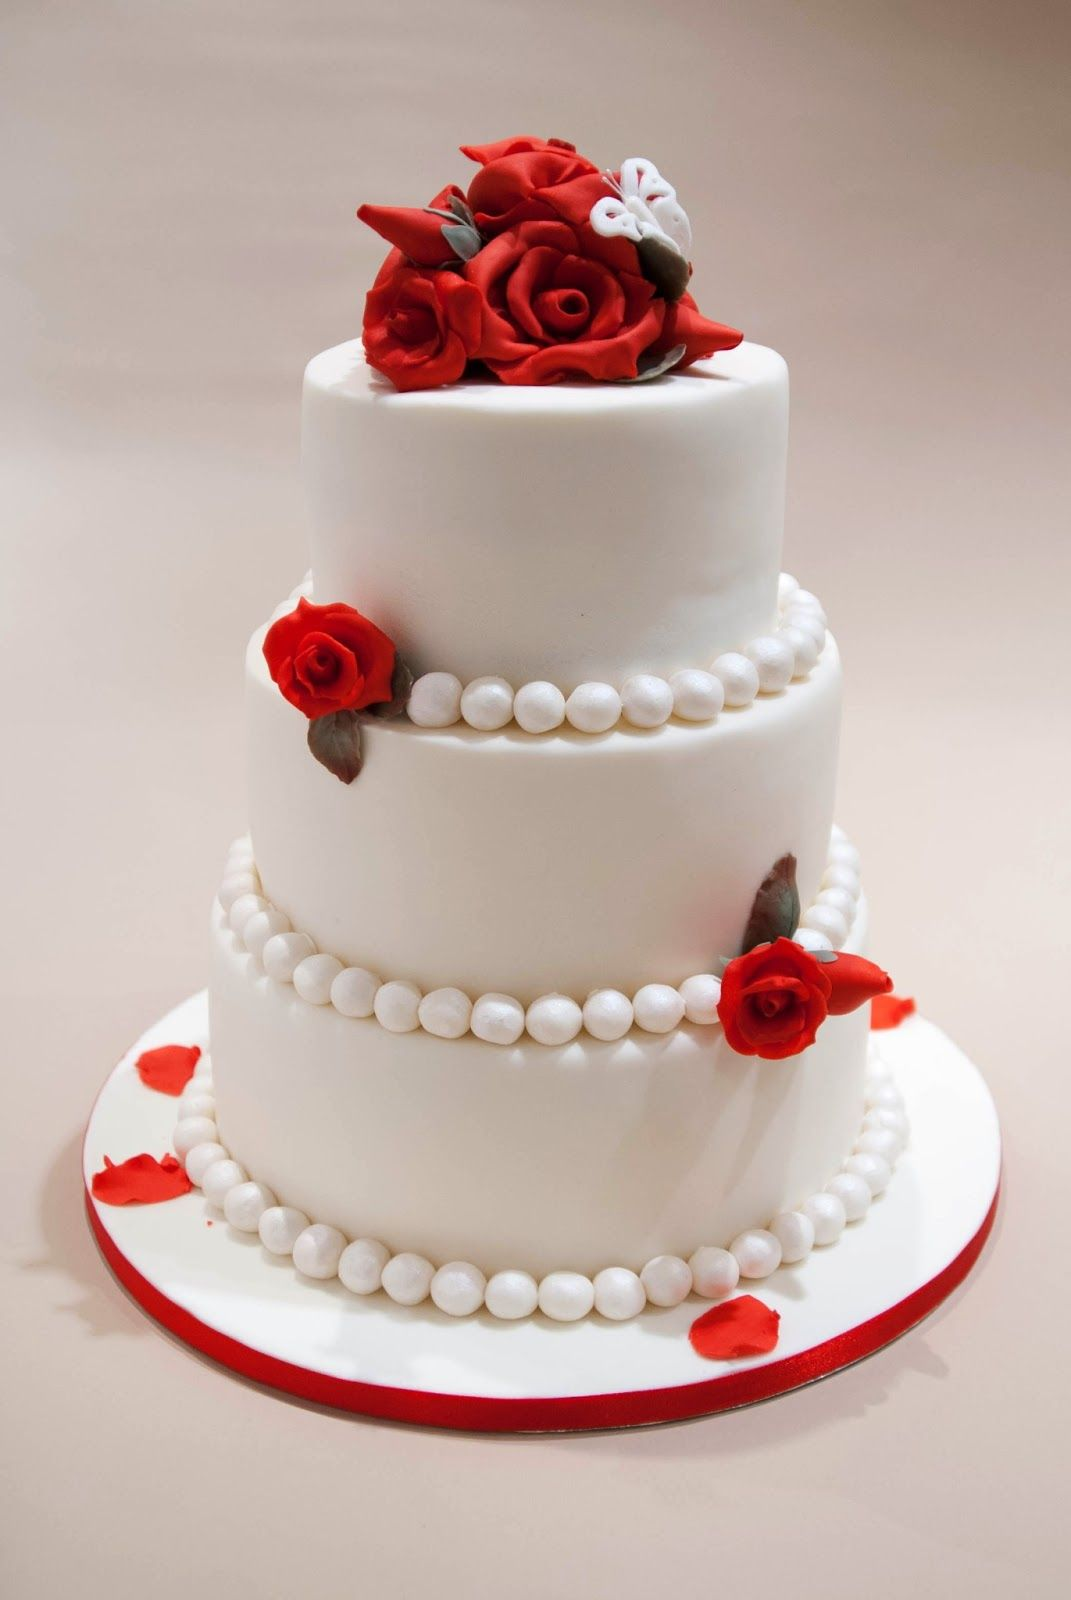 The Simple 3 Tier Wedding Cake Without Having To Spend A Lot Red Rose